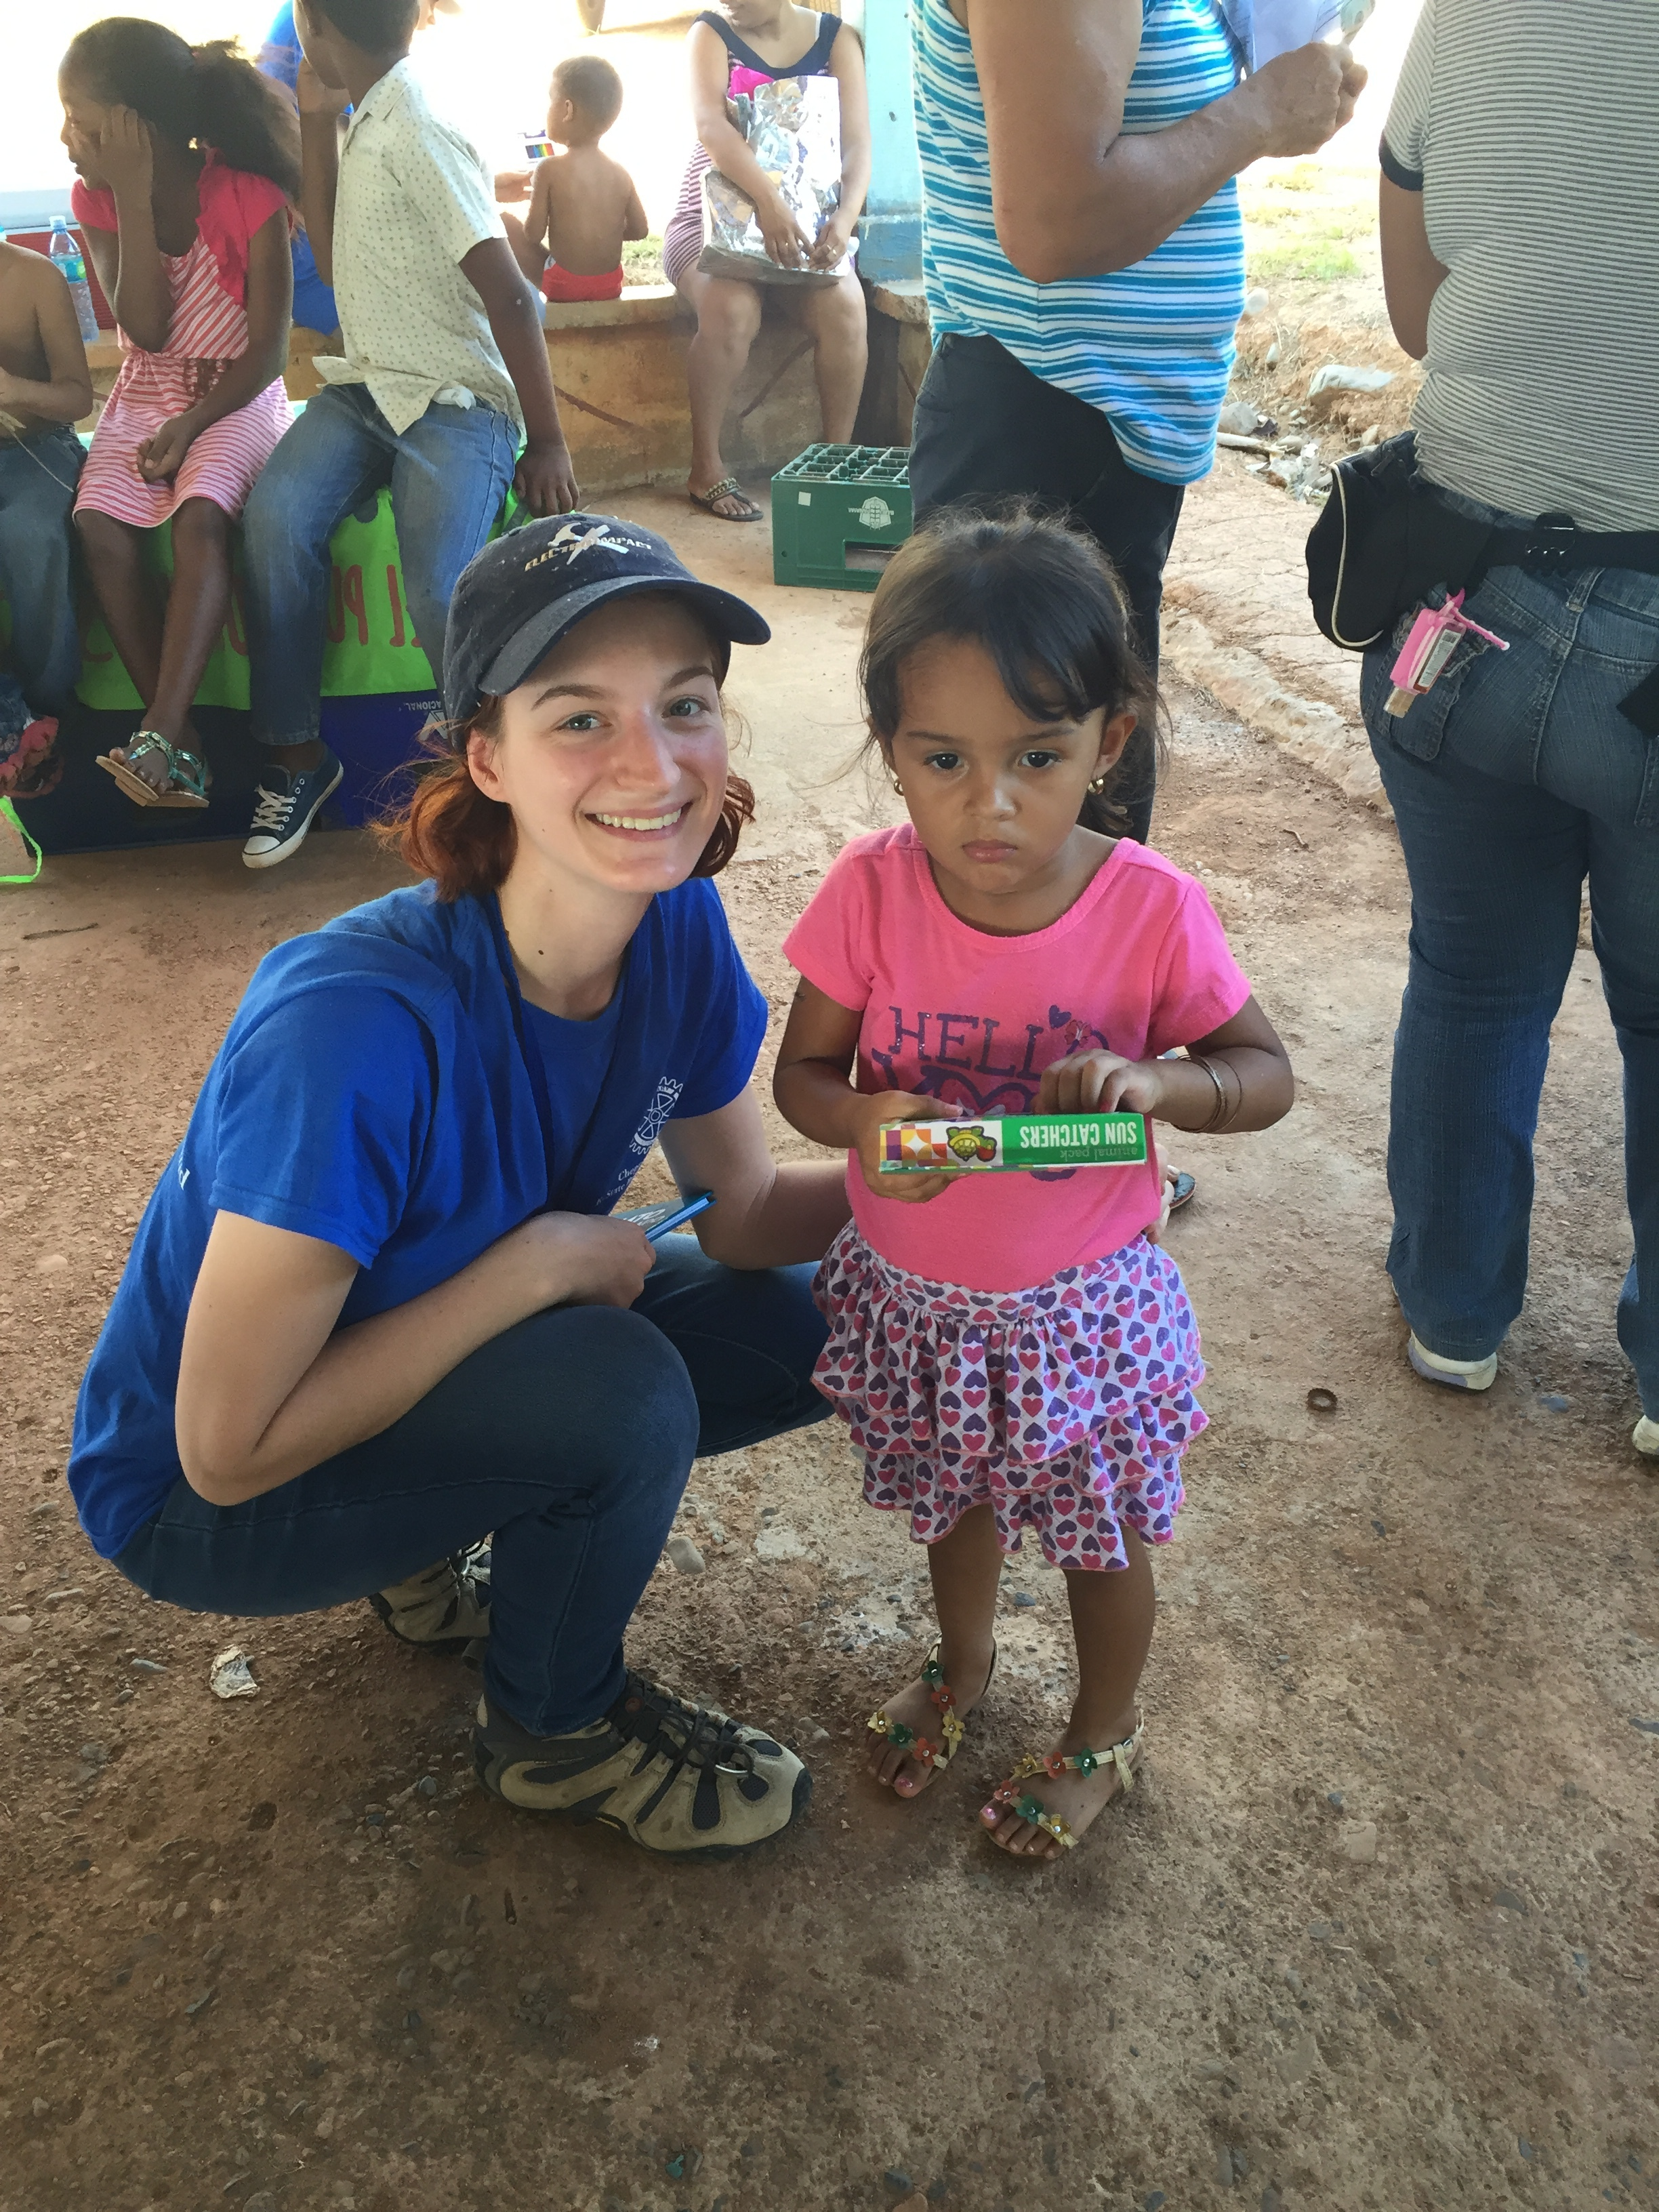 Team members gave out donations to children including books, puzzles, coloring pencils, and more!